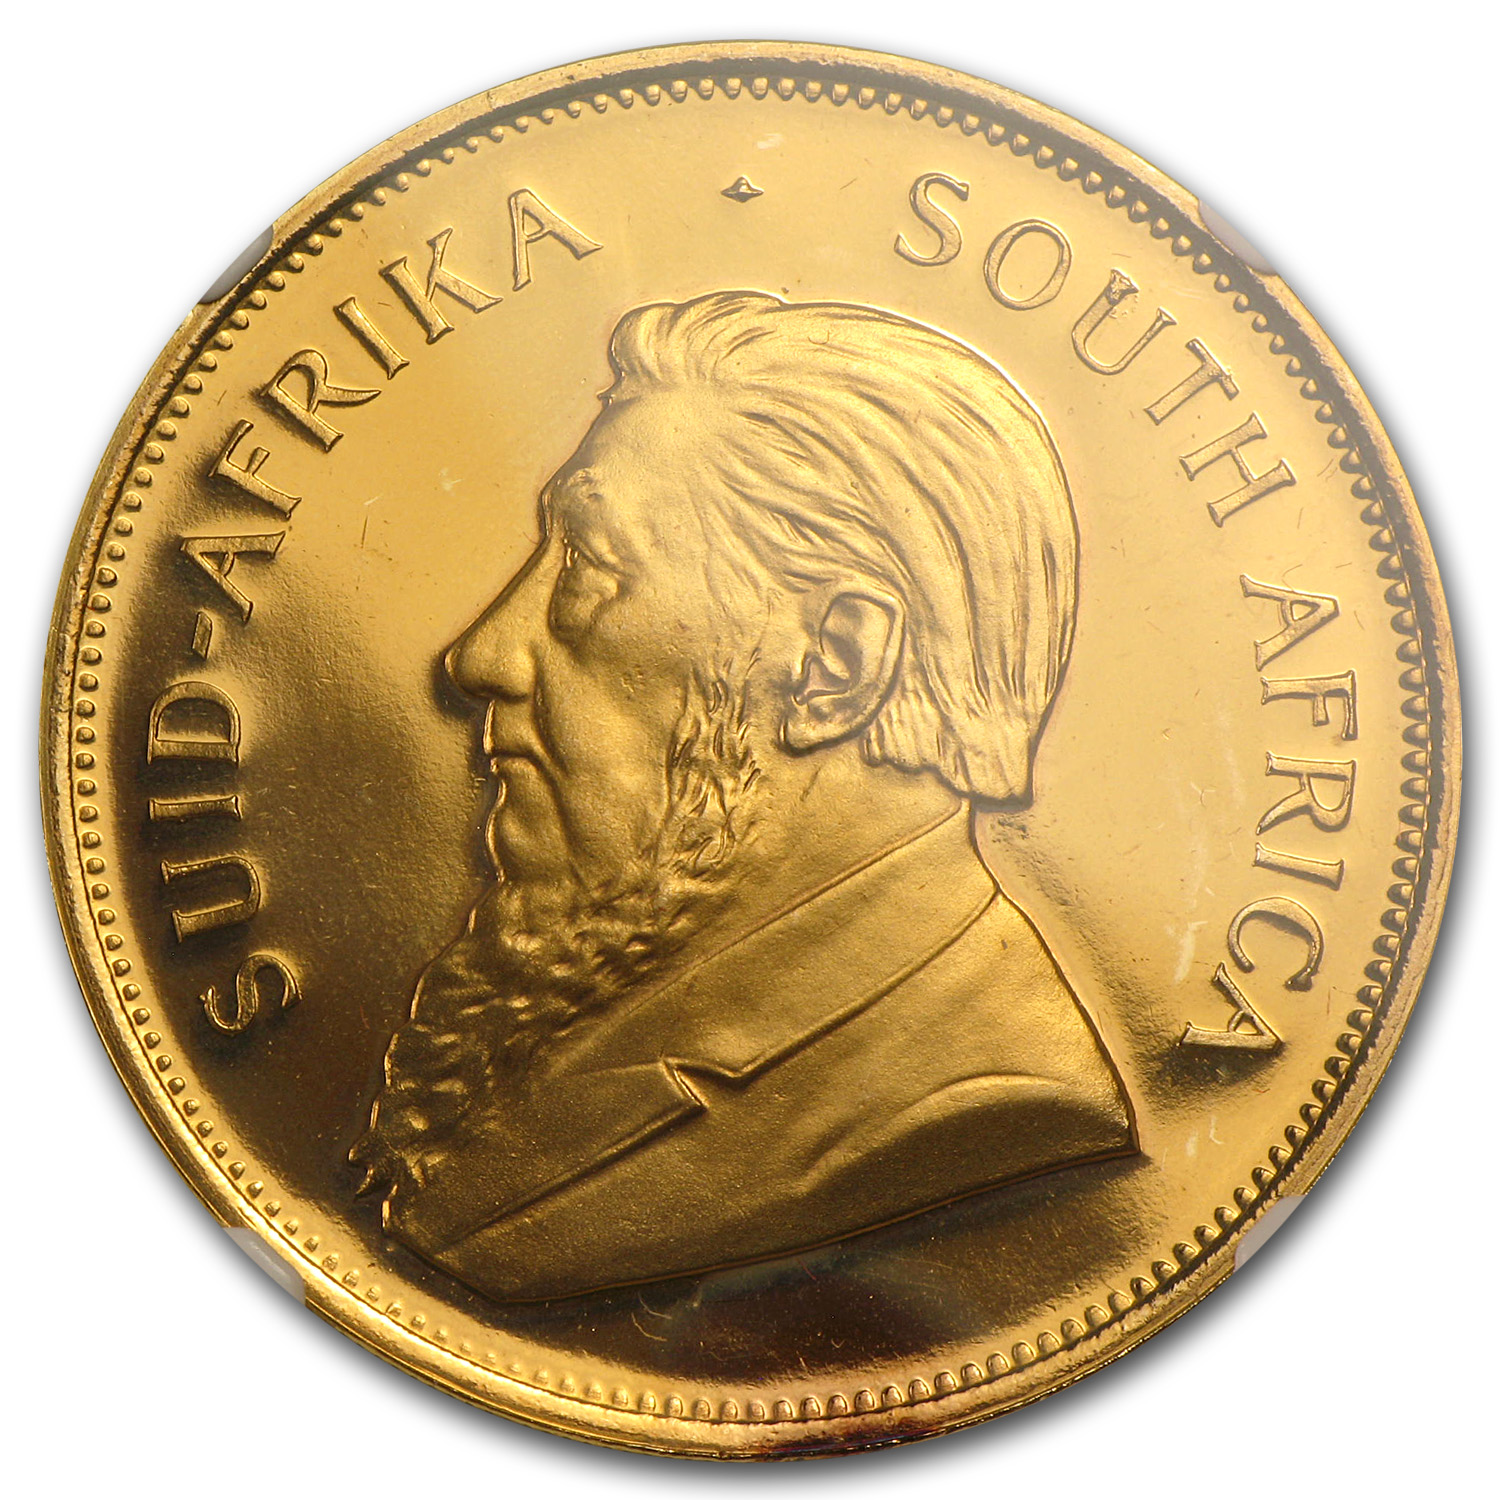 1989 1 oz Gold South African Krugerrand PF-67 NGC (GRC)